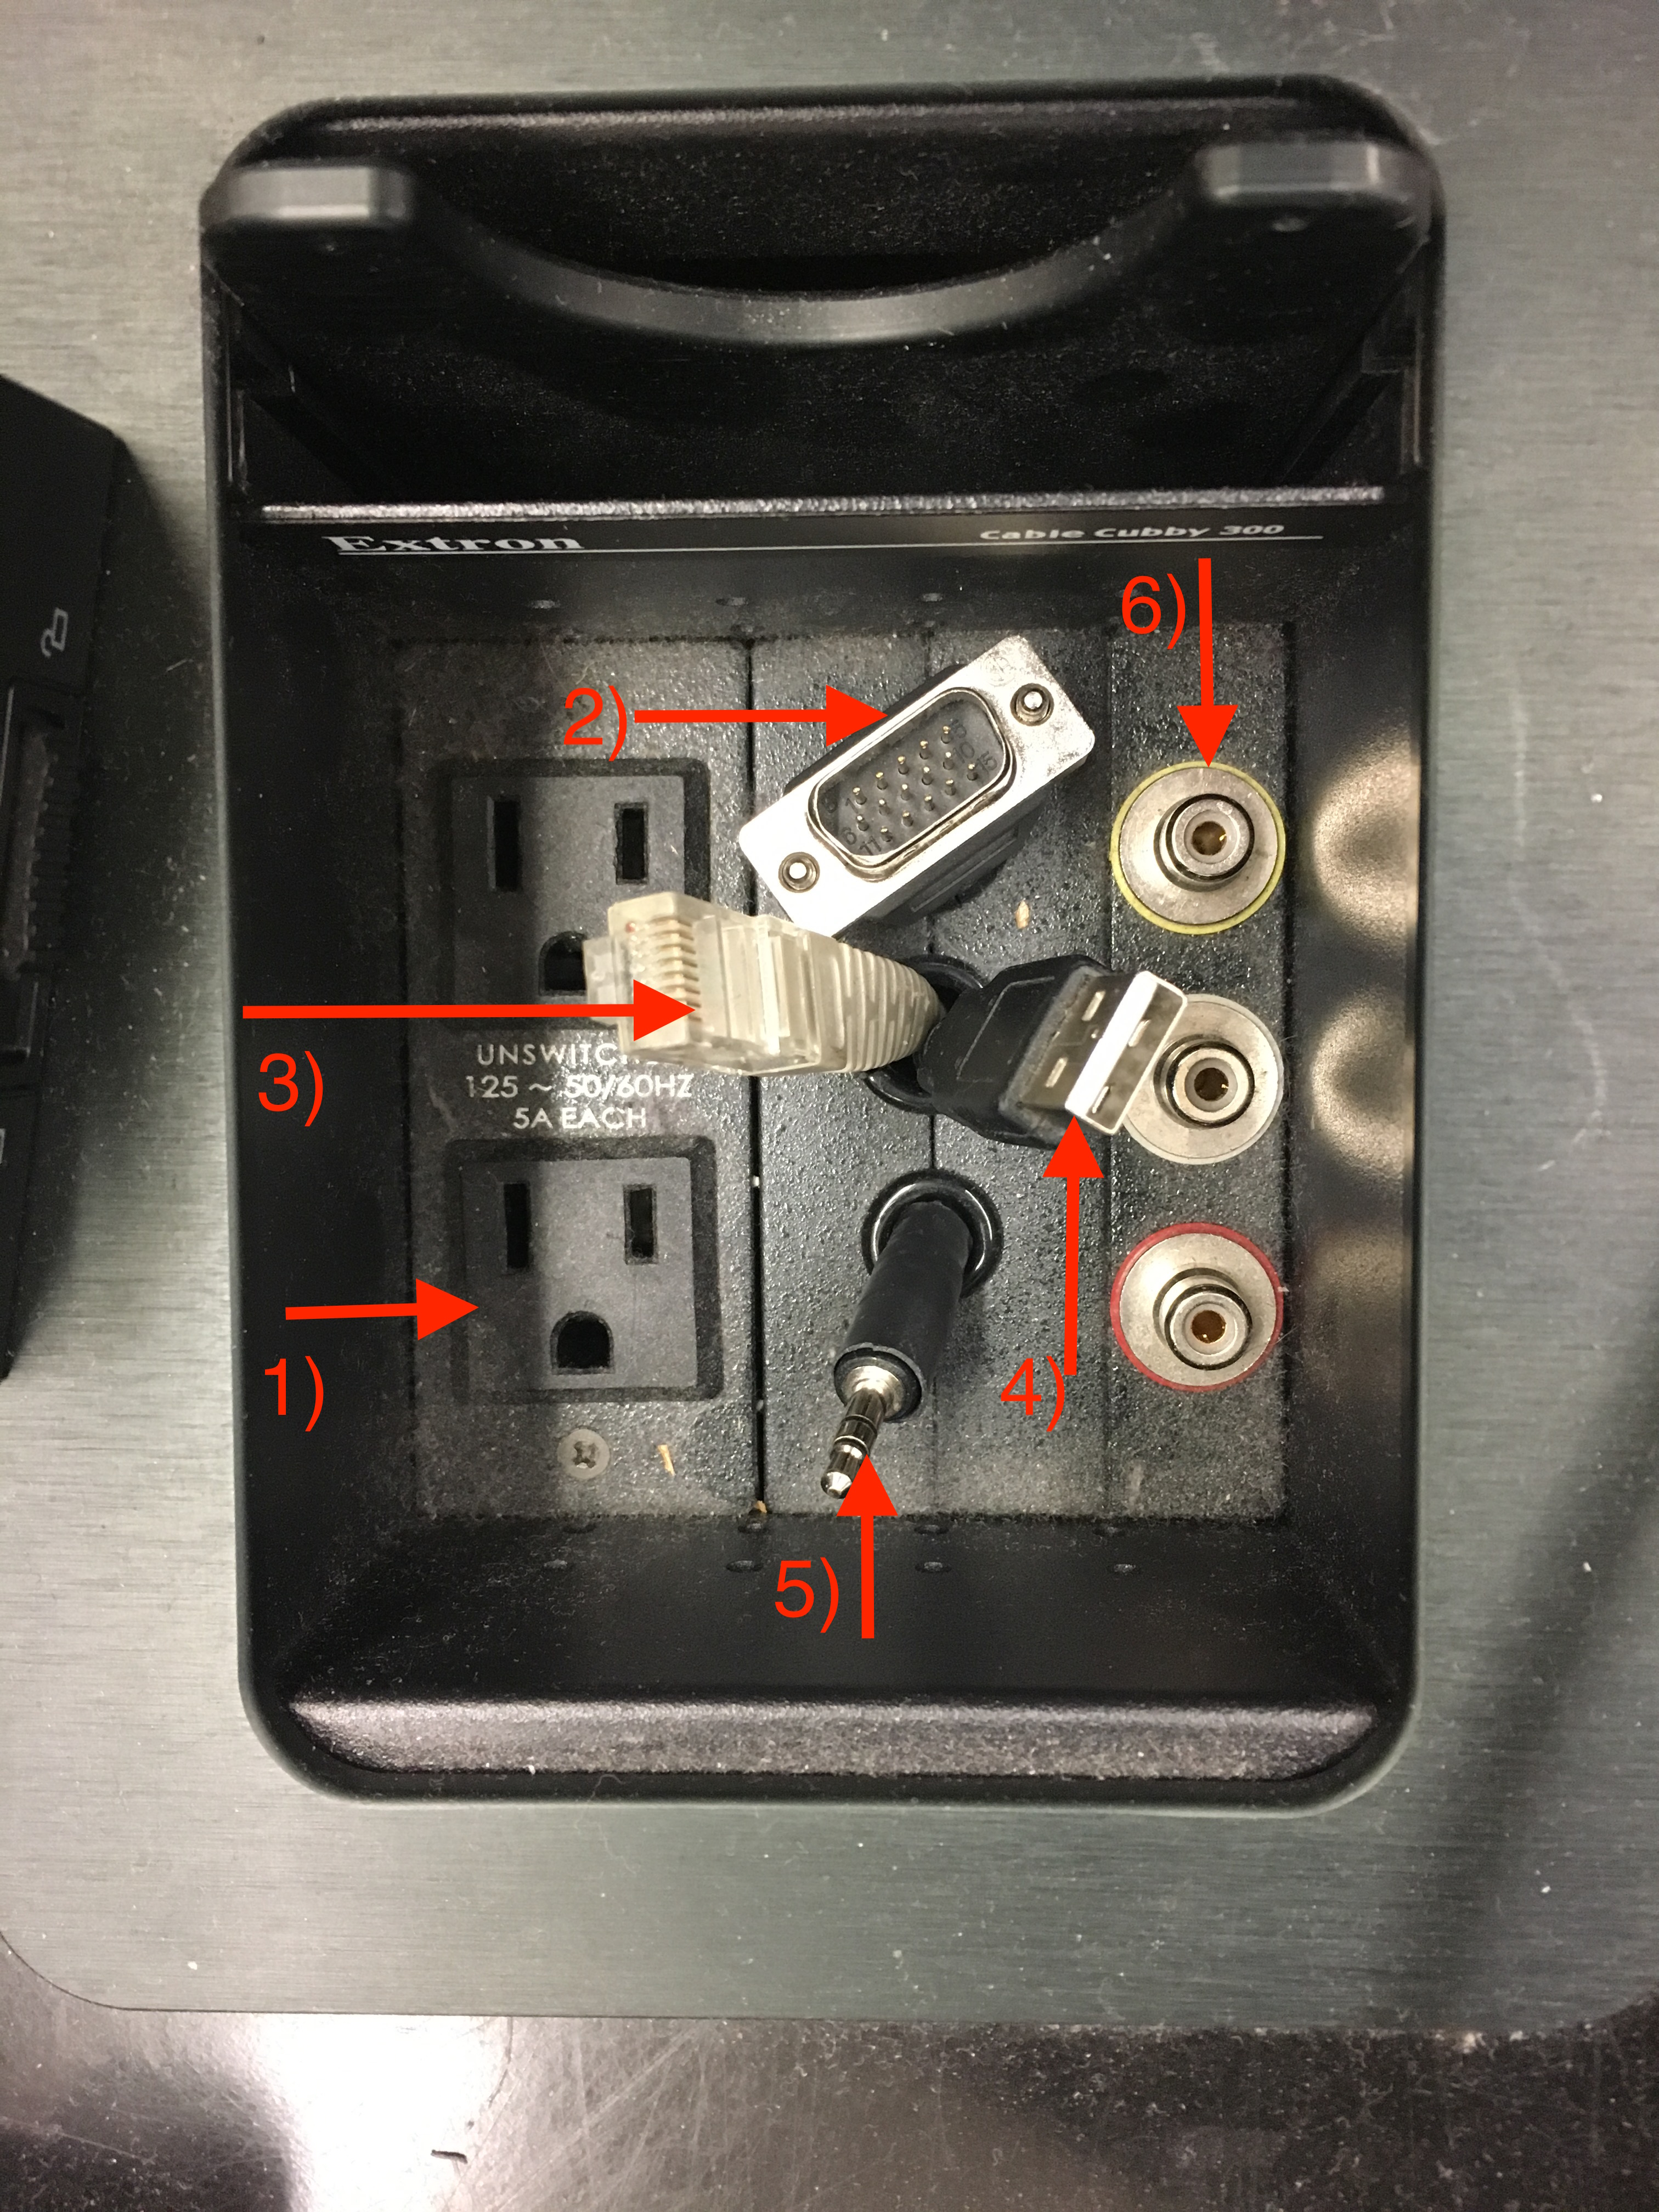 Photo of the cable cubby installed at the instructor's station with the power outlets, vga cable, network cable, usb cable, audio cable and inputs identified by number